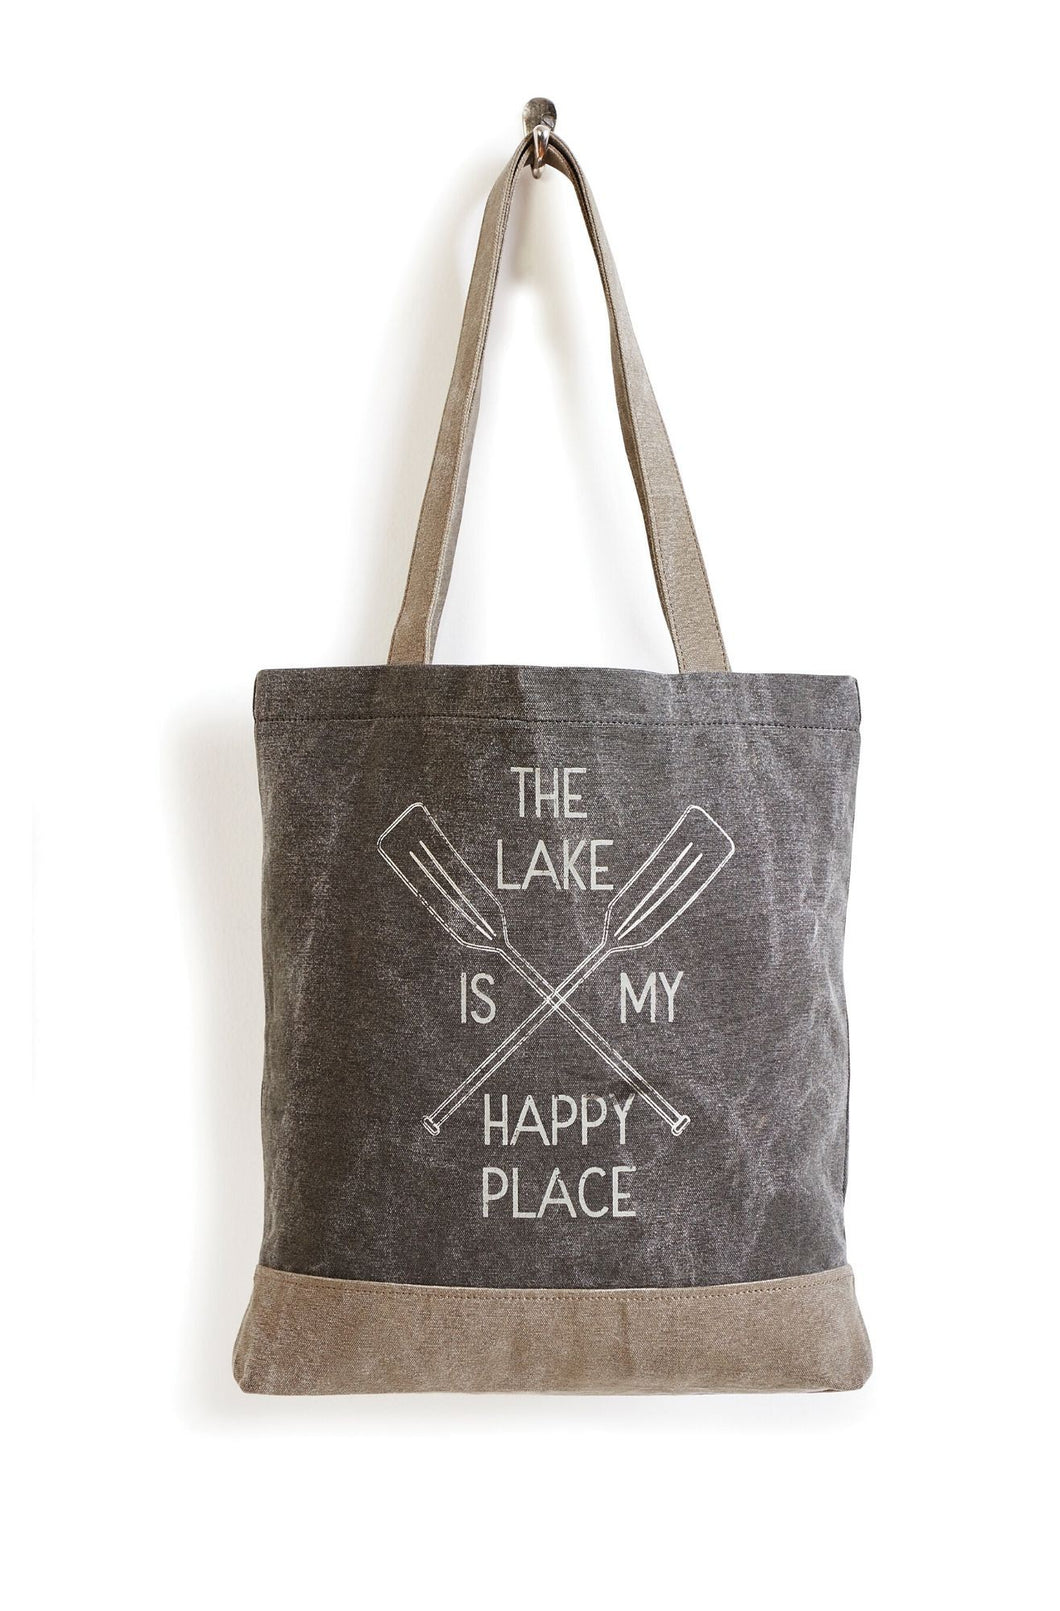 The Lake Is My Happy Place Tote